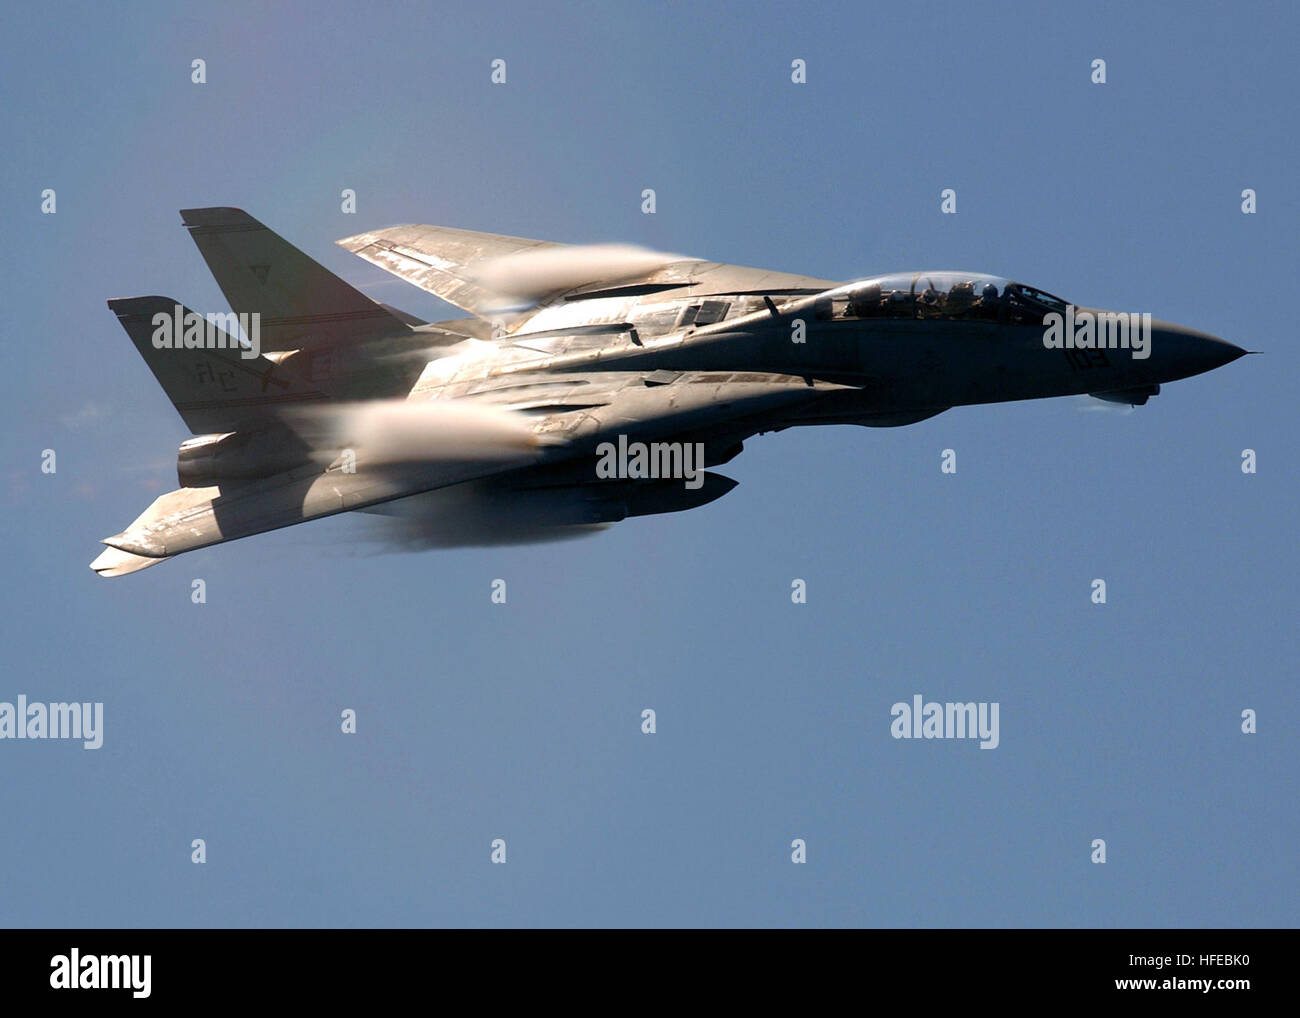 050330-N-5345W-073 Mediterranean Sea (Mar. 30, 2005) - Clouds of water vapor rush over the swept-wings of an F-14B - Stock Image